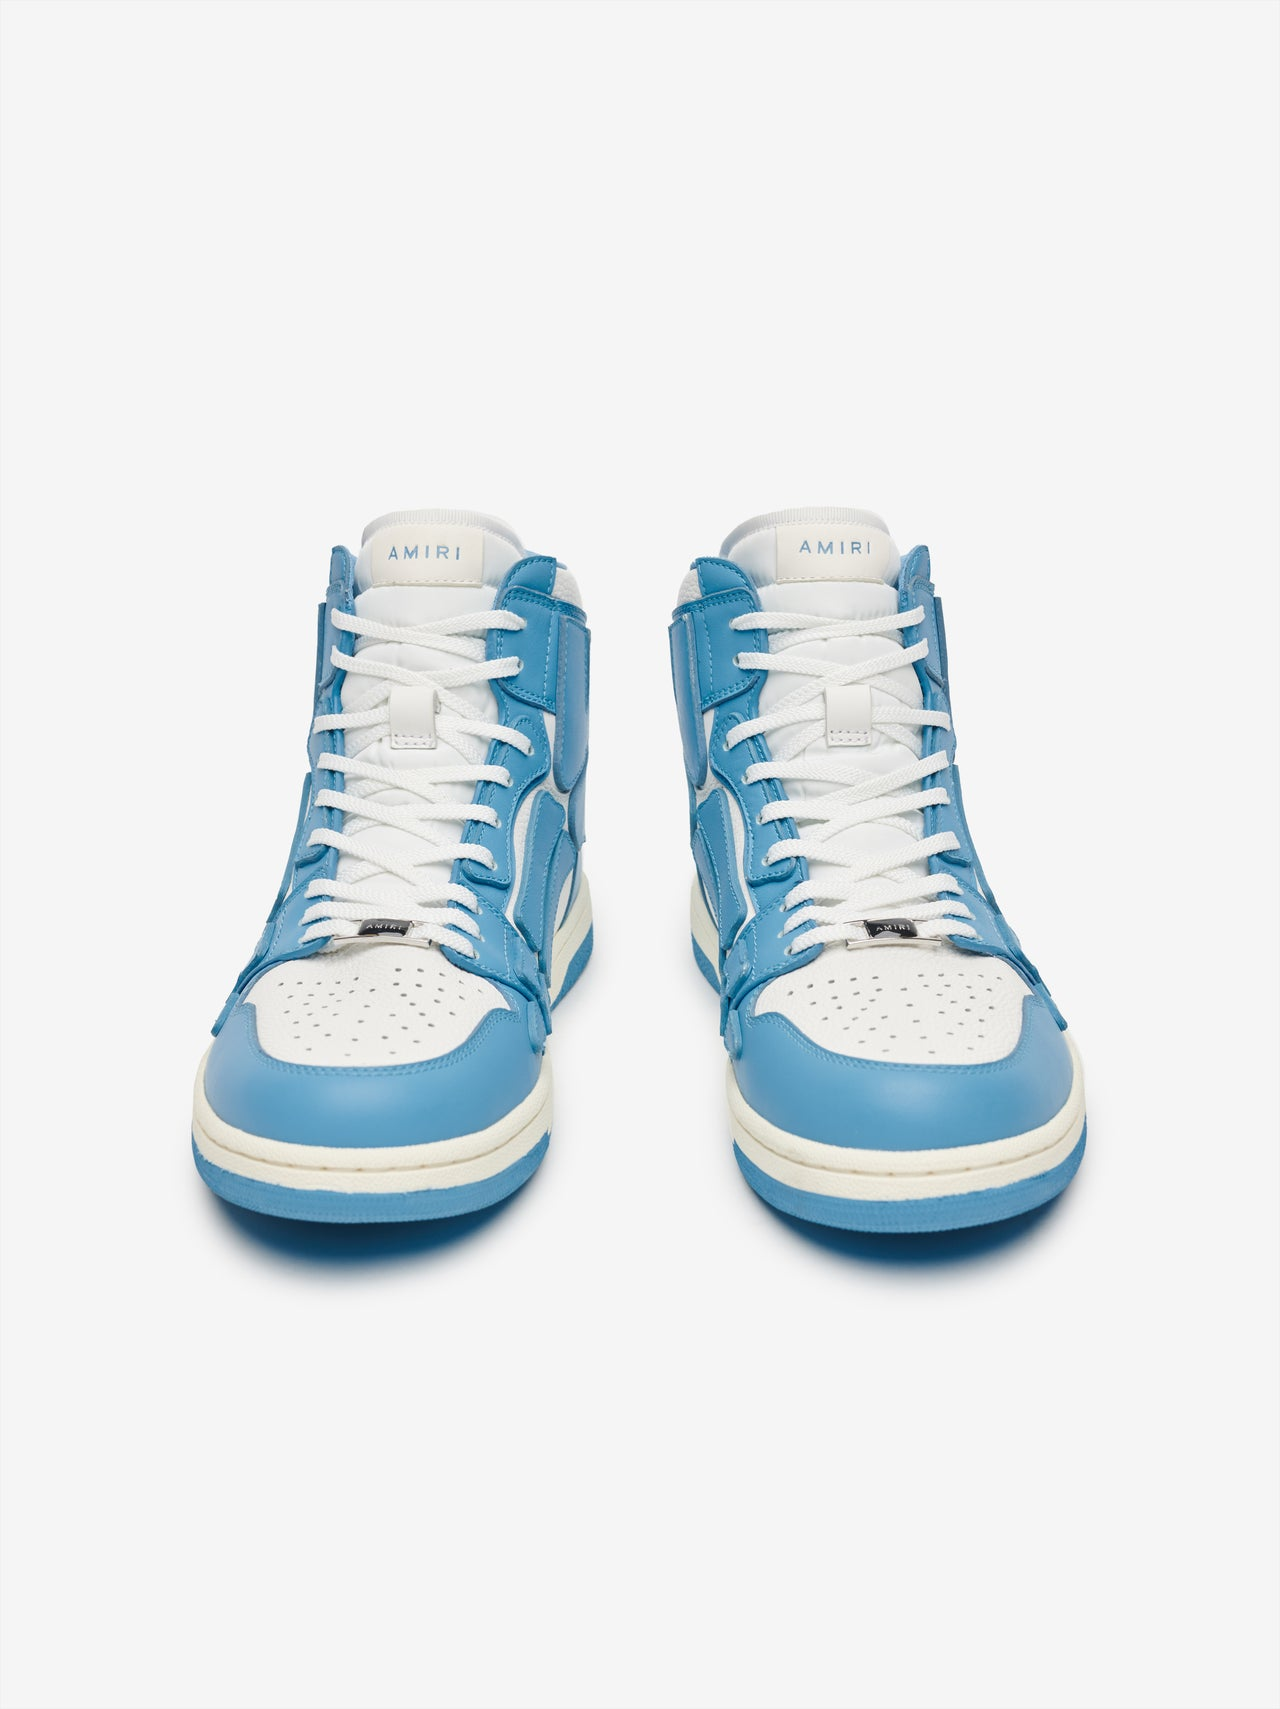 SKEL TOP HI - POWDER BLUE / WHITE